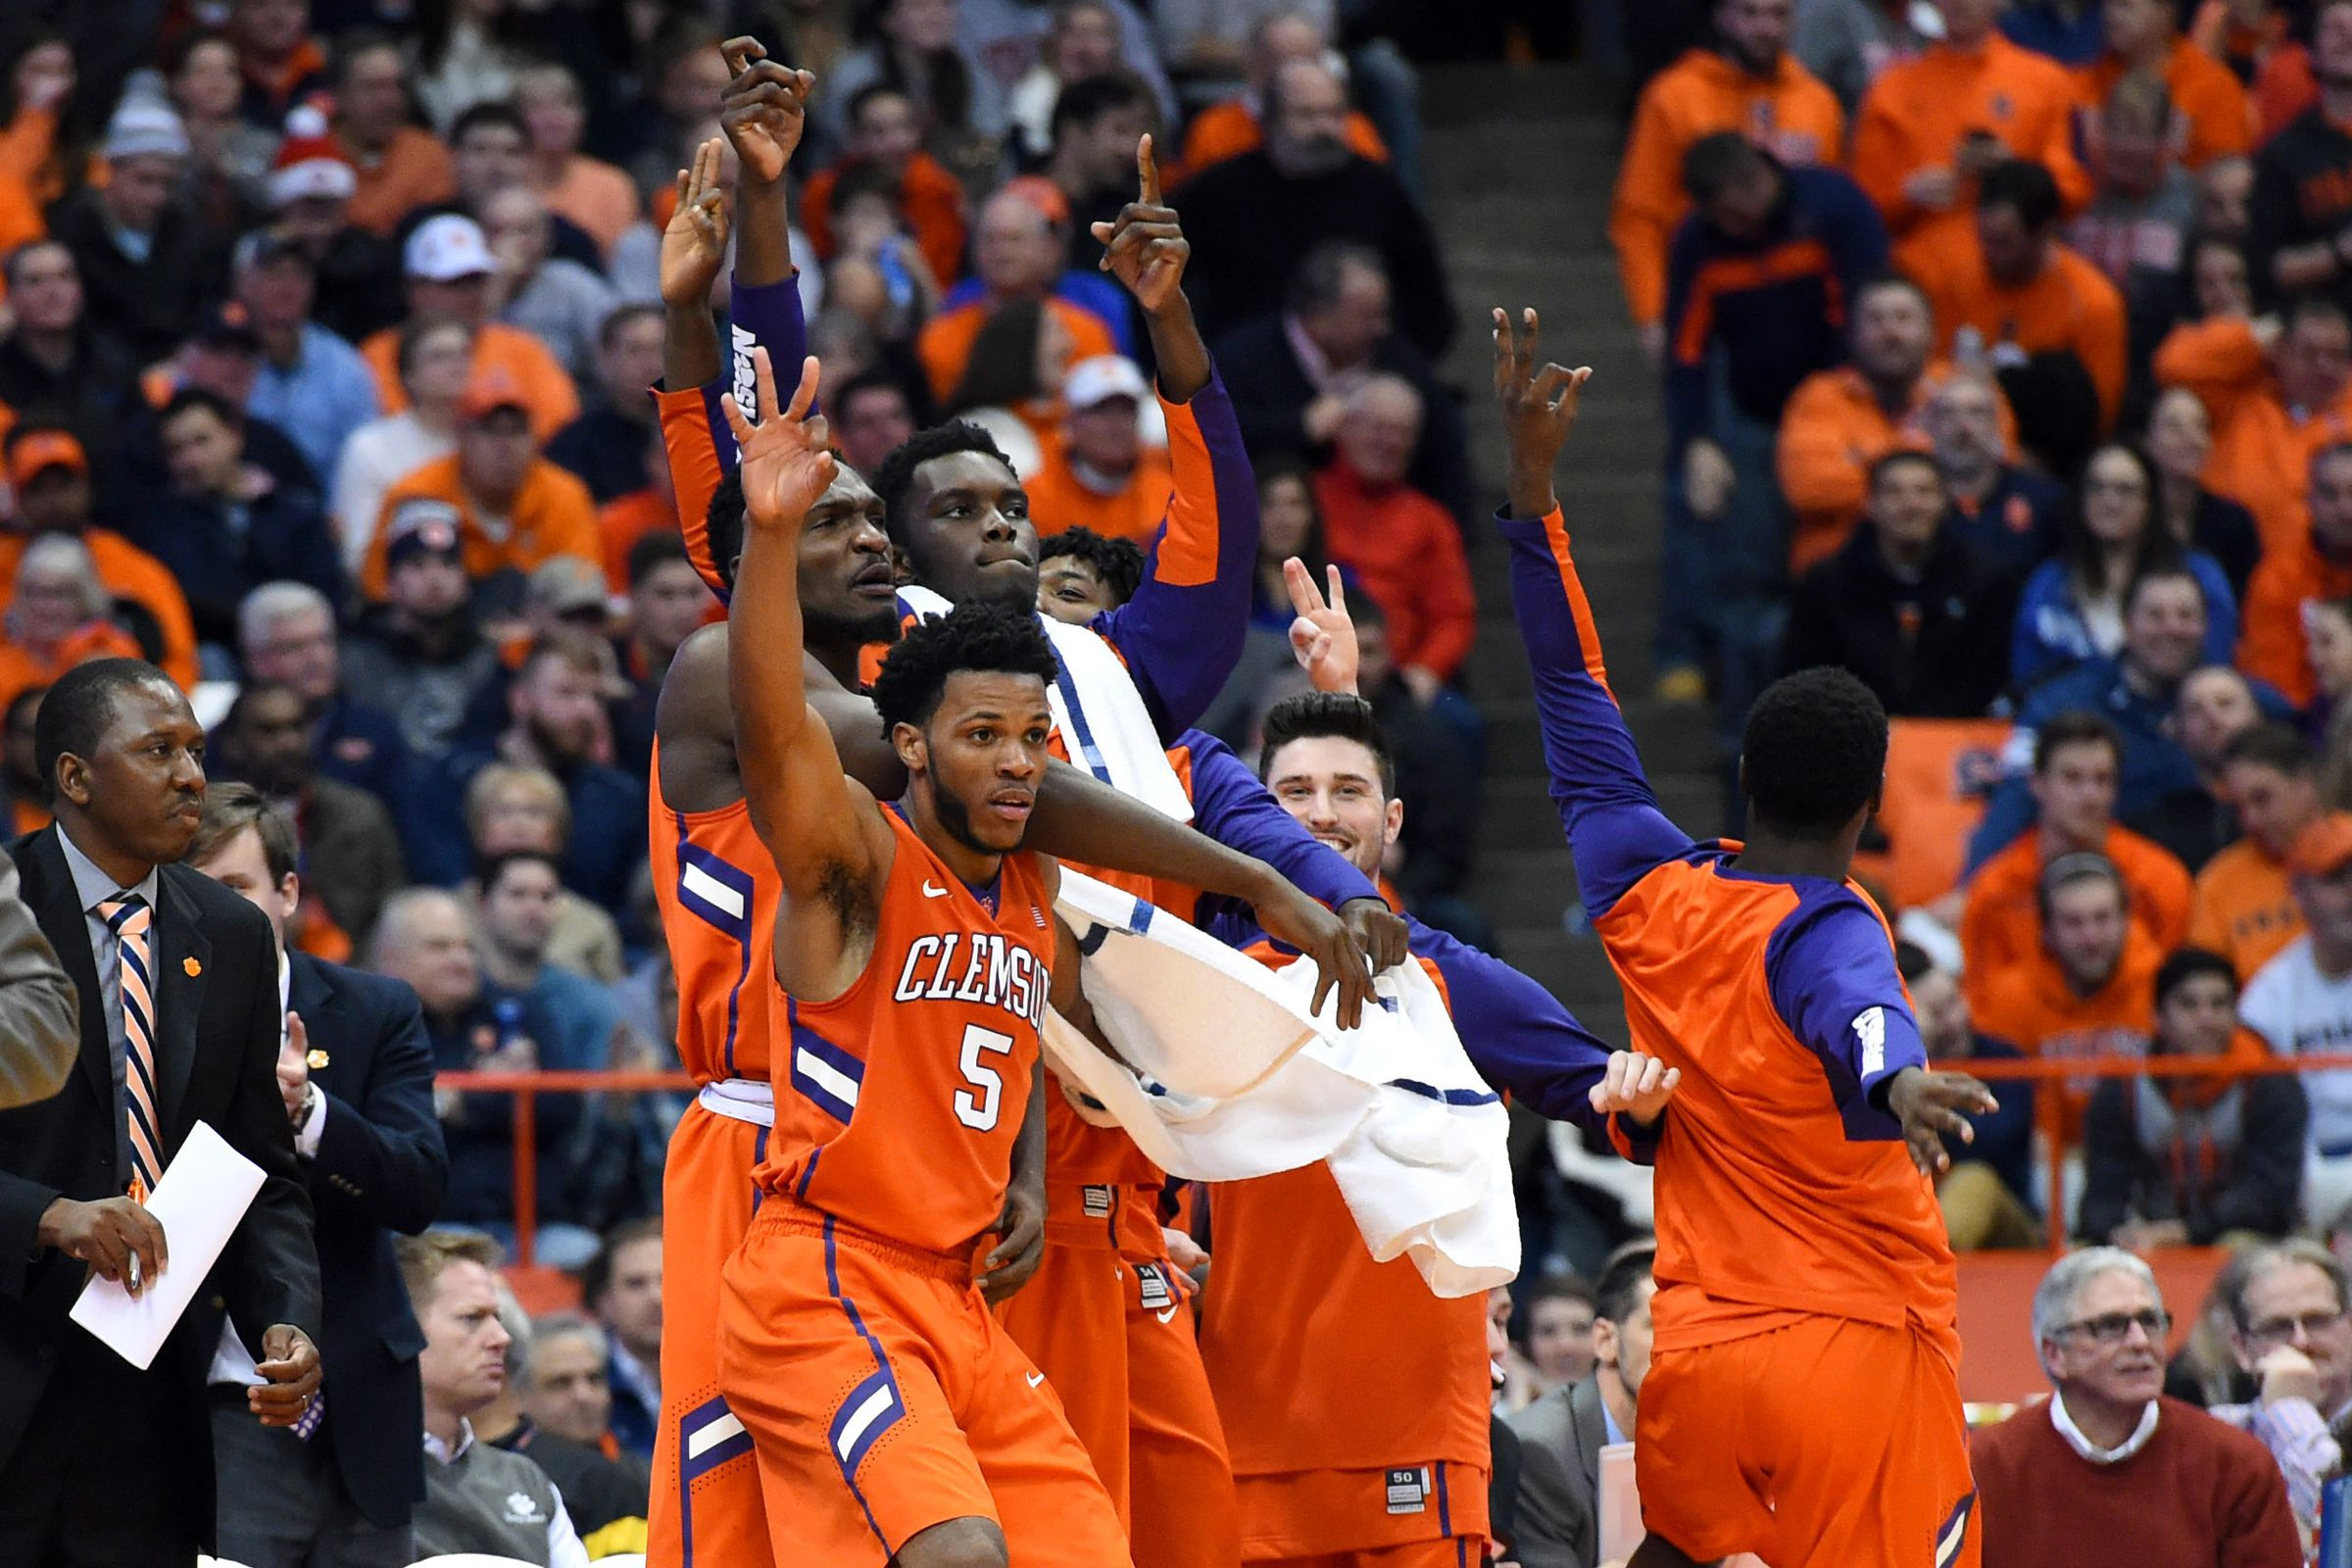 Syracuse basketball drops overtime thriller to Clemson for third straight loss